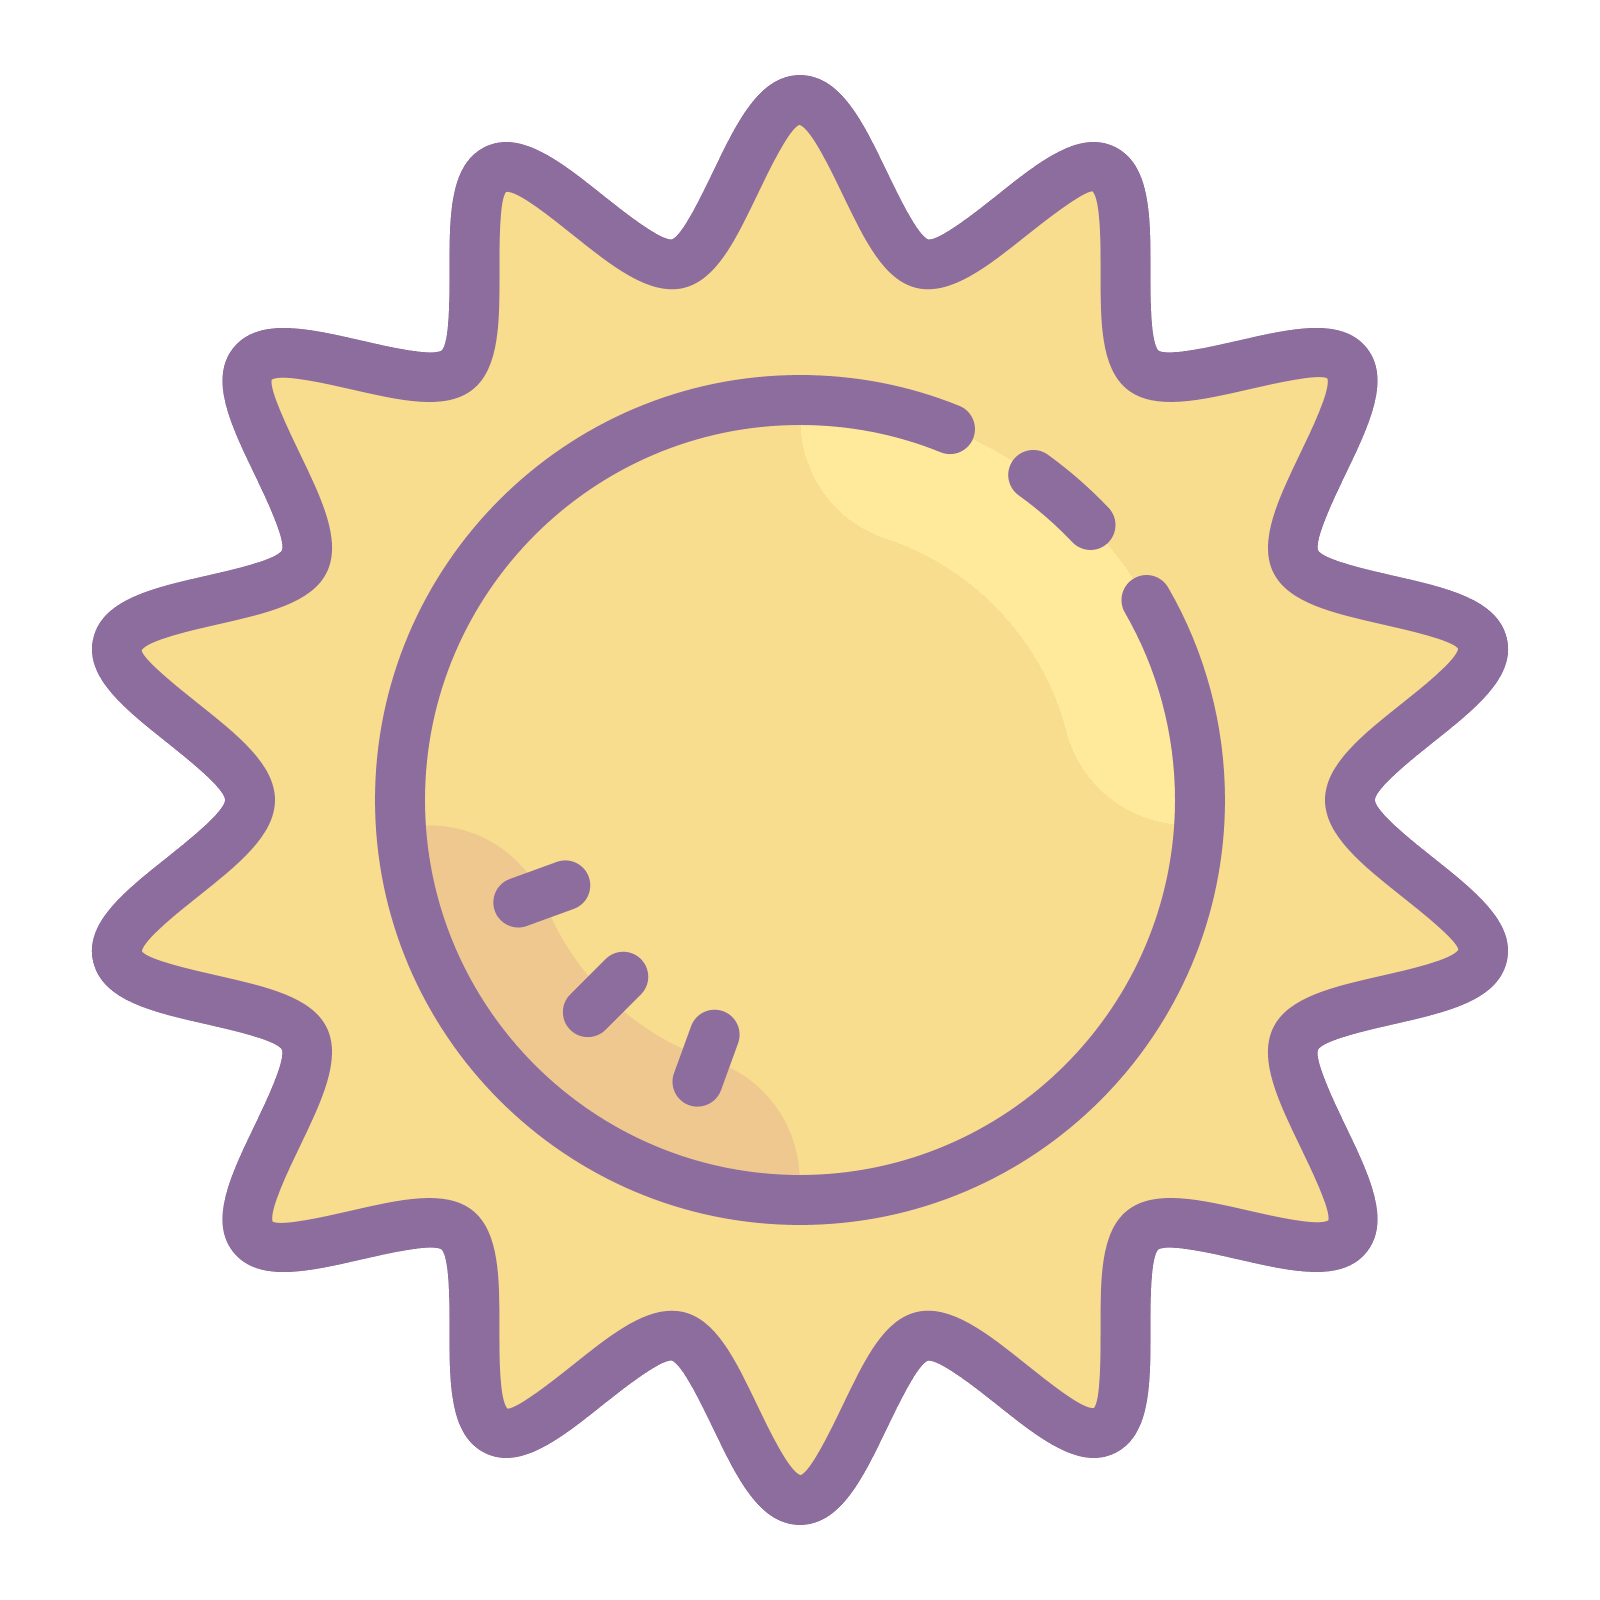 Summer png flat. Icon free download and